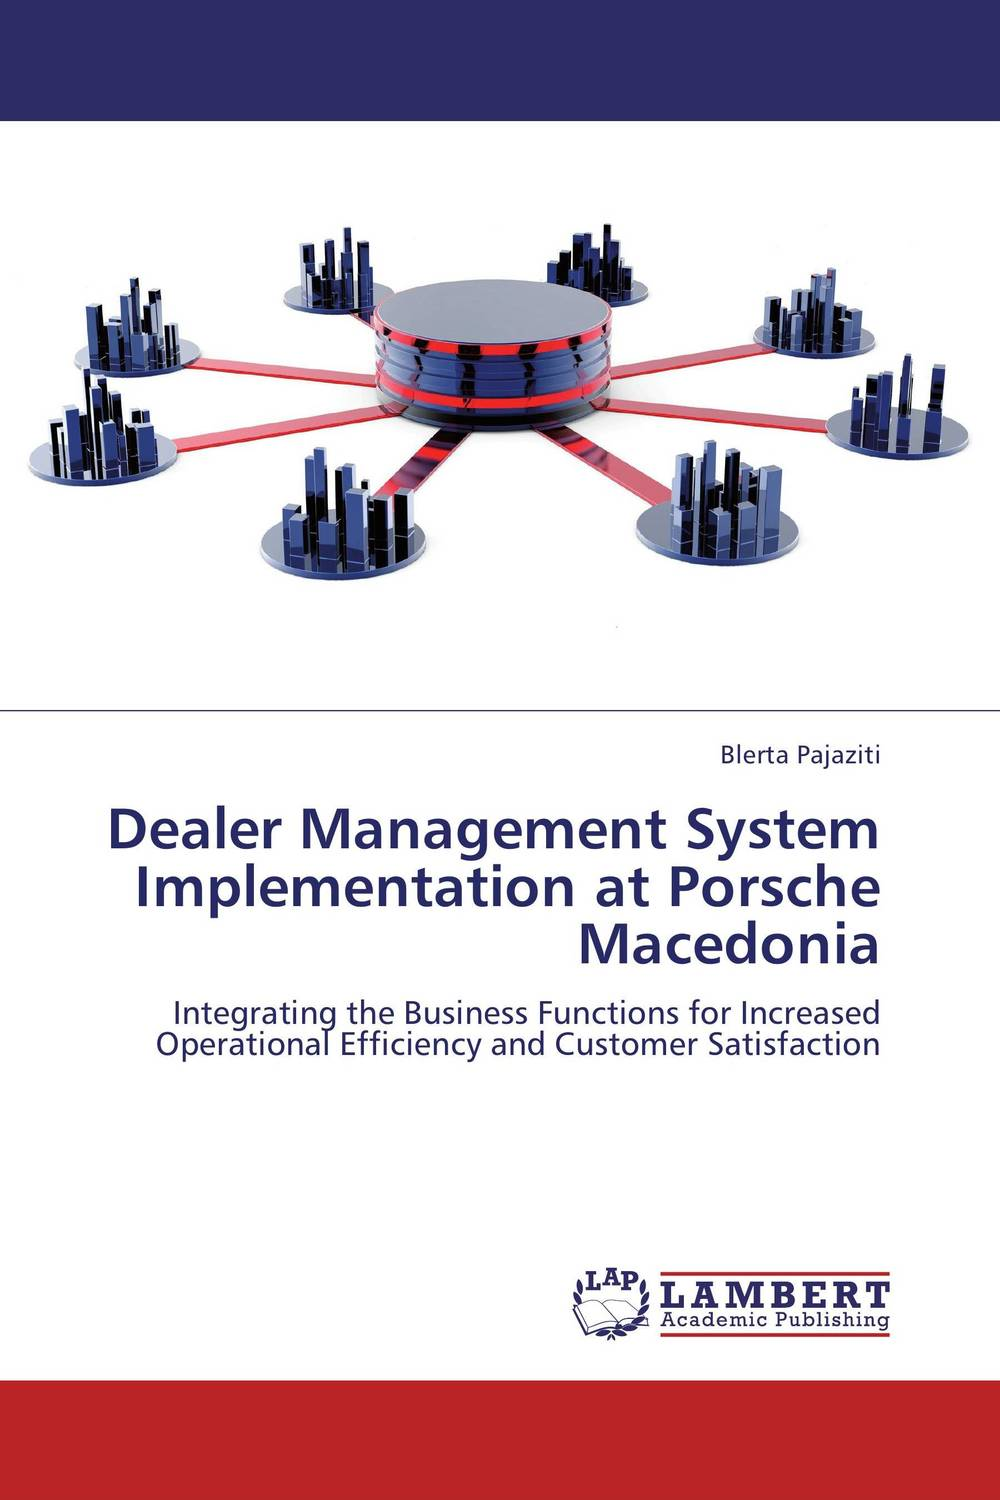 Dealer Management System Implementation at Porsche Macedonia the waters in the republic of macedonia as a business ecosystem